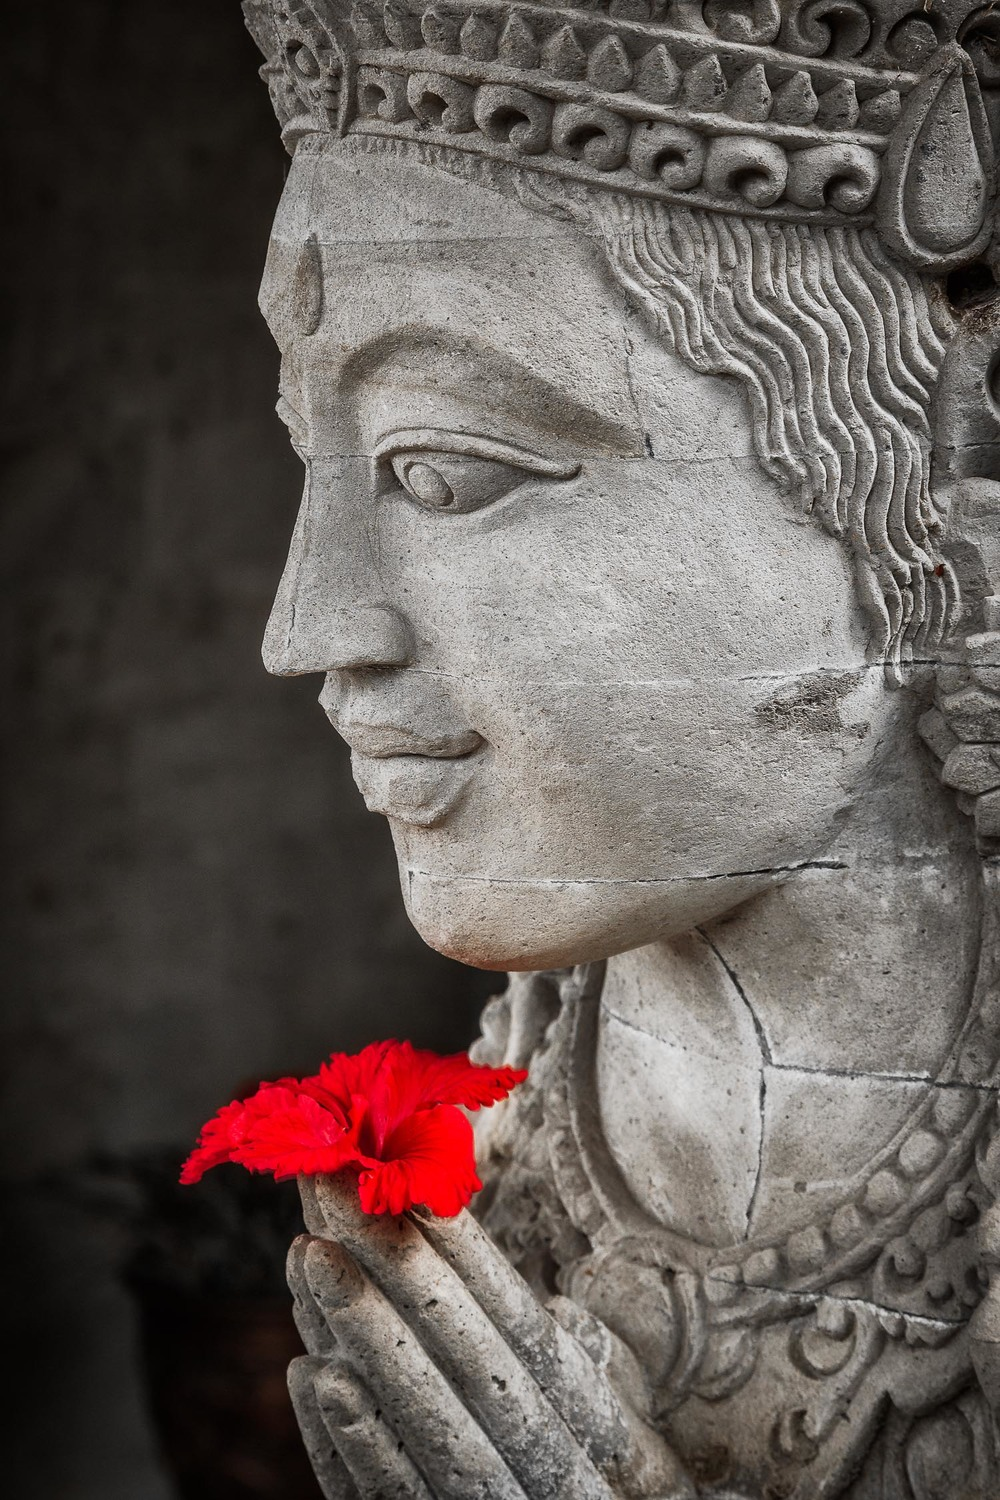 Buddha Statue and Flower, Bali